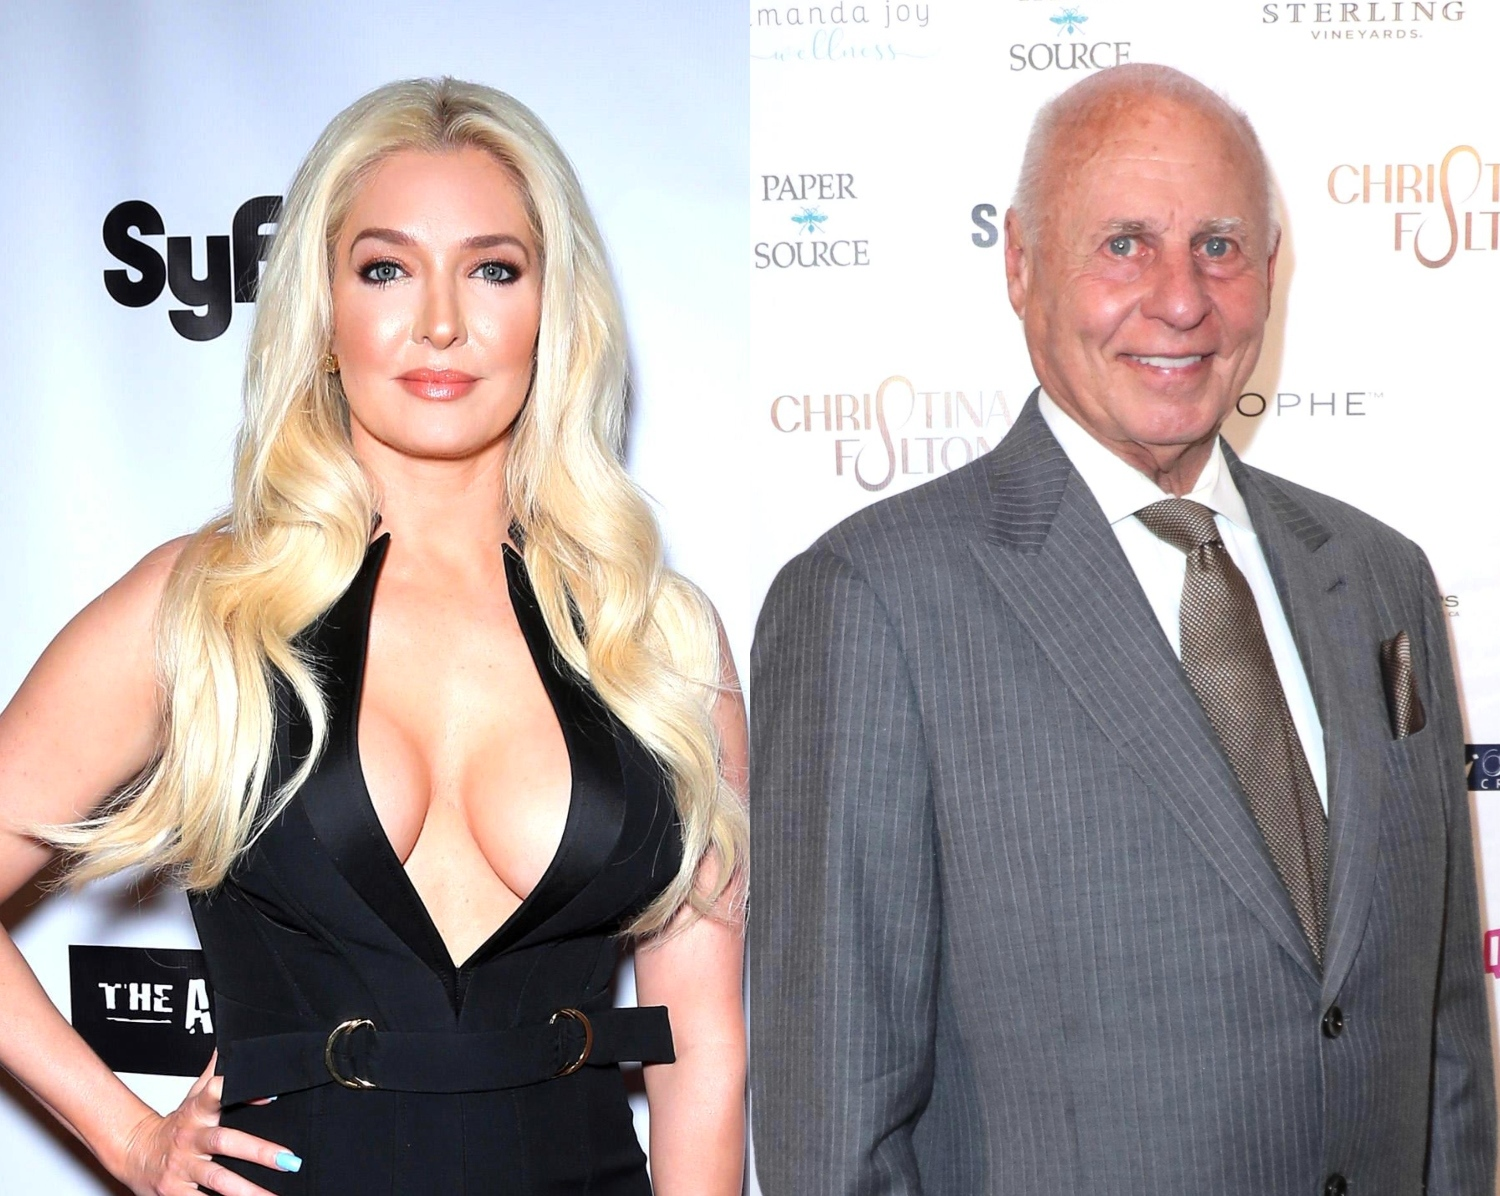 Pasadena Police Have No Record of Tom Girardi's Car Accident as Erika Jayne's Account is Questioned as Journalists Have No Evidence of Crash